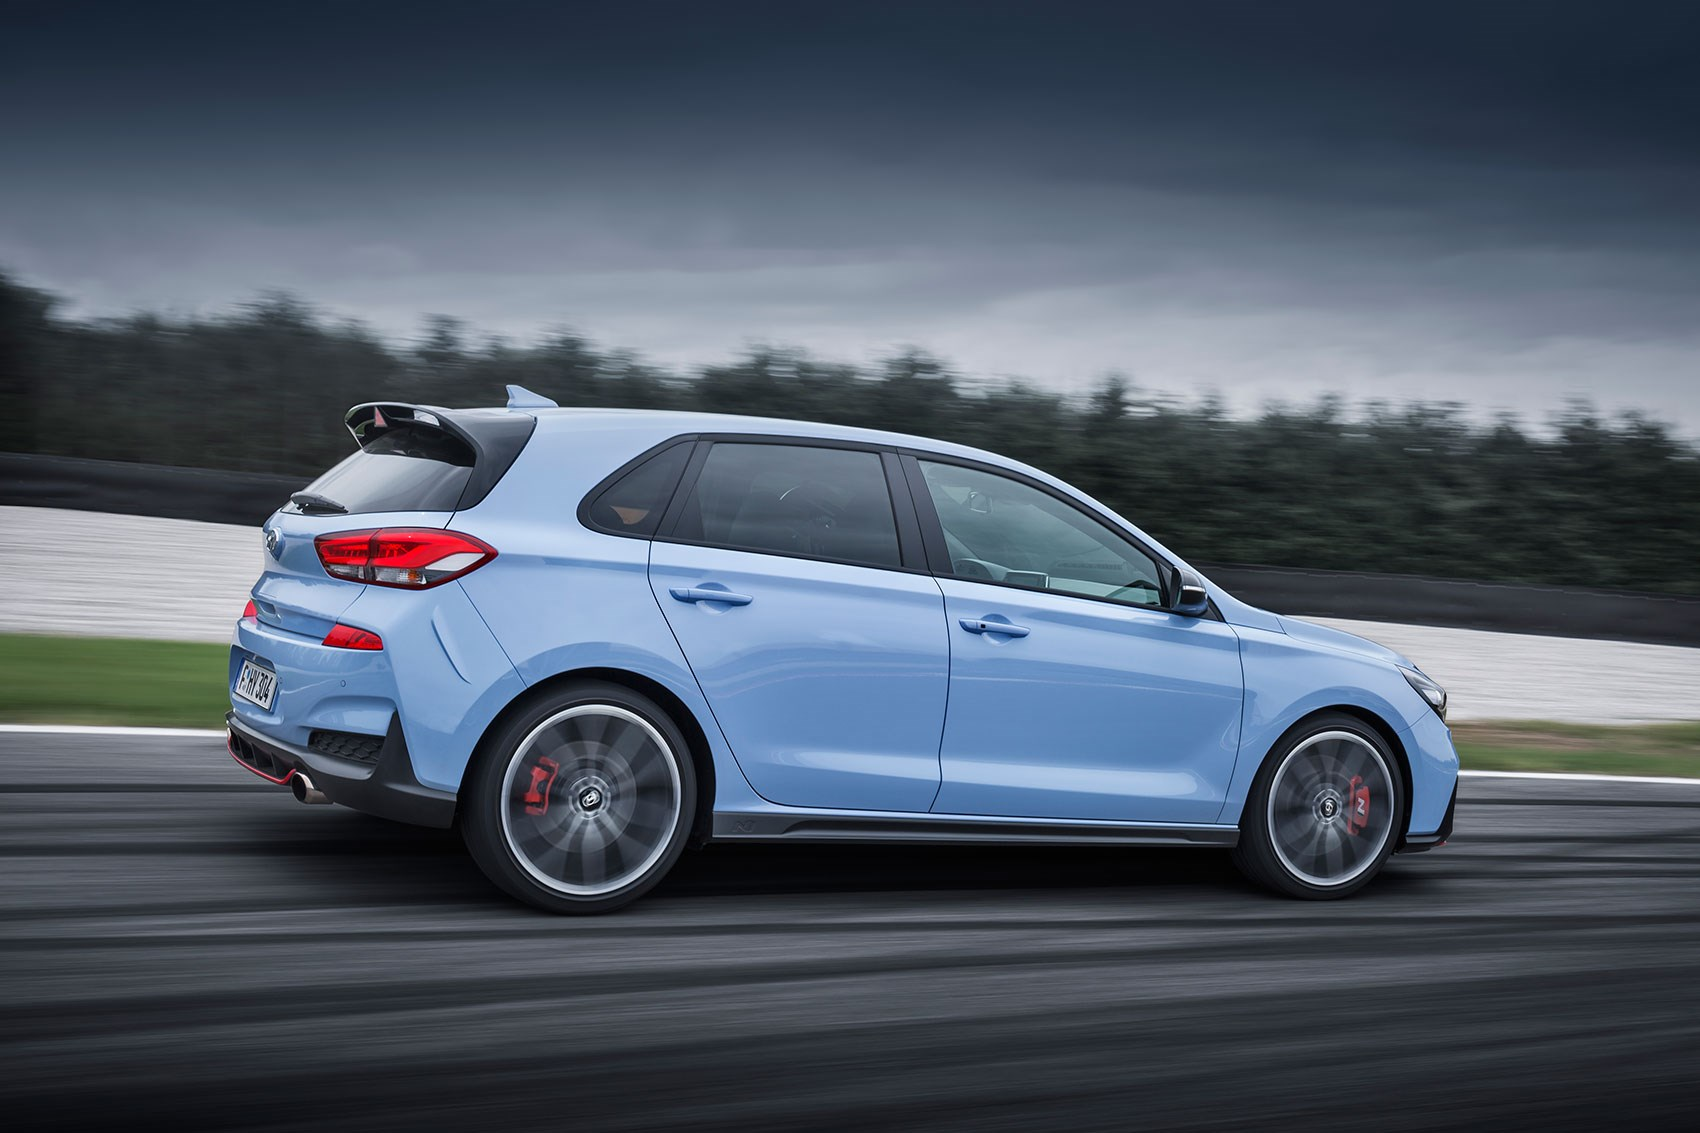 I30 N Interieur Hyundai I30n And I30 Fastback Revealed In Pictures By Car